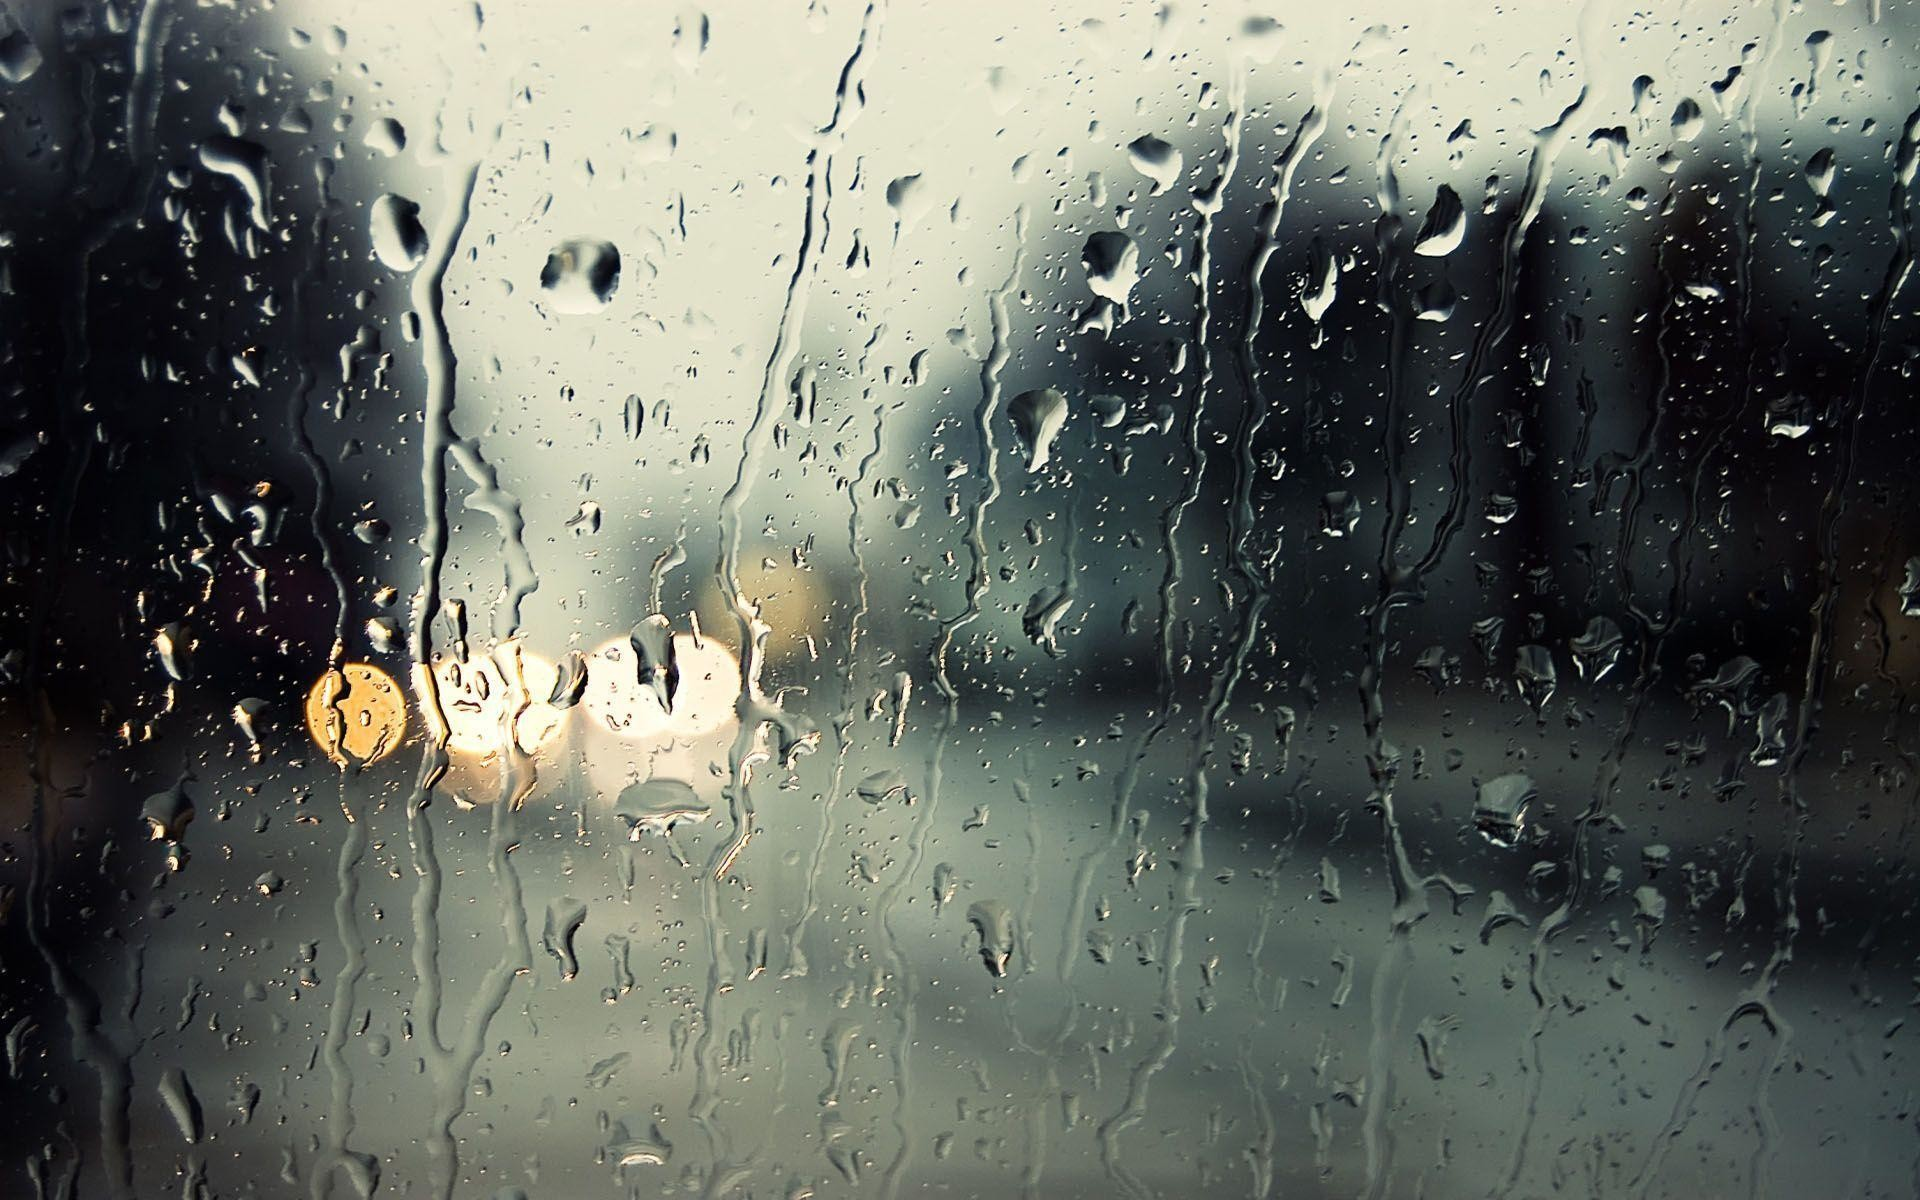 Rainy Day Wallpaper | Wallpaper Download